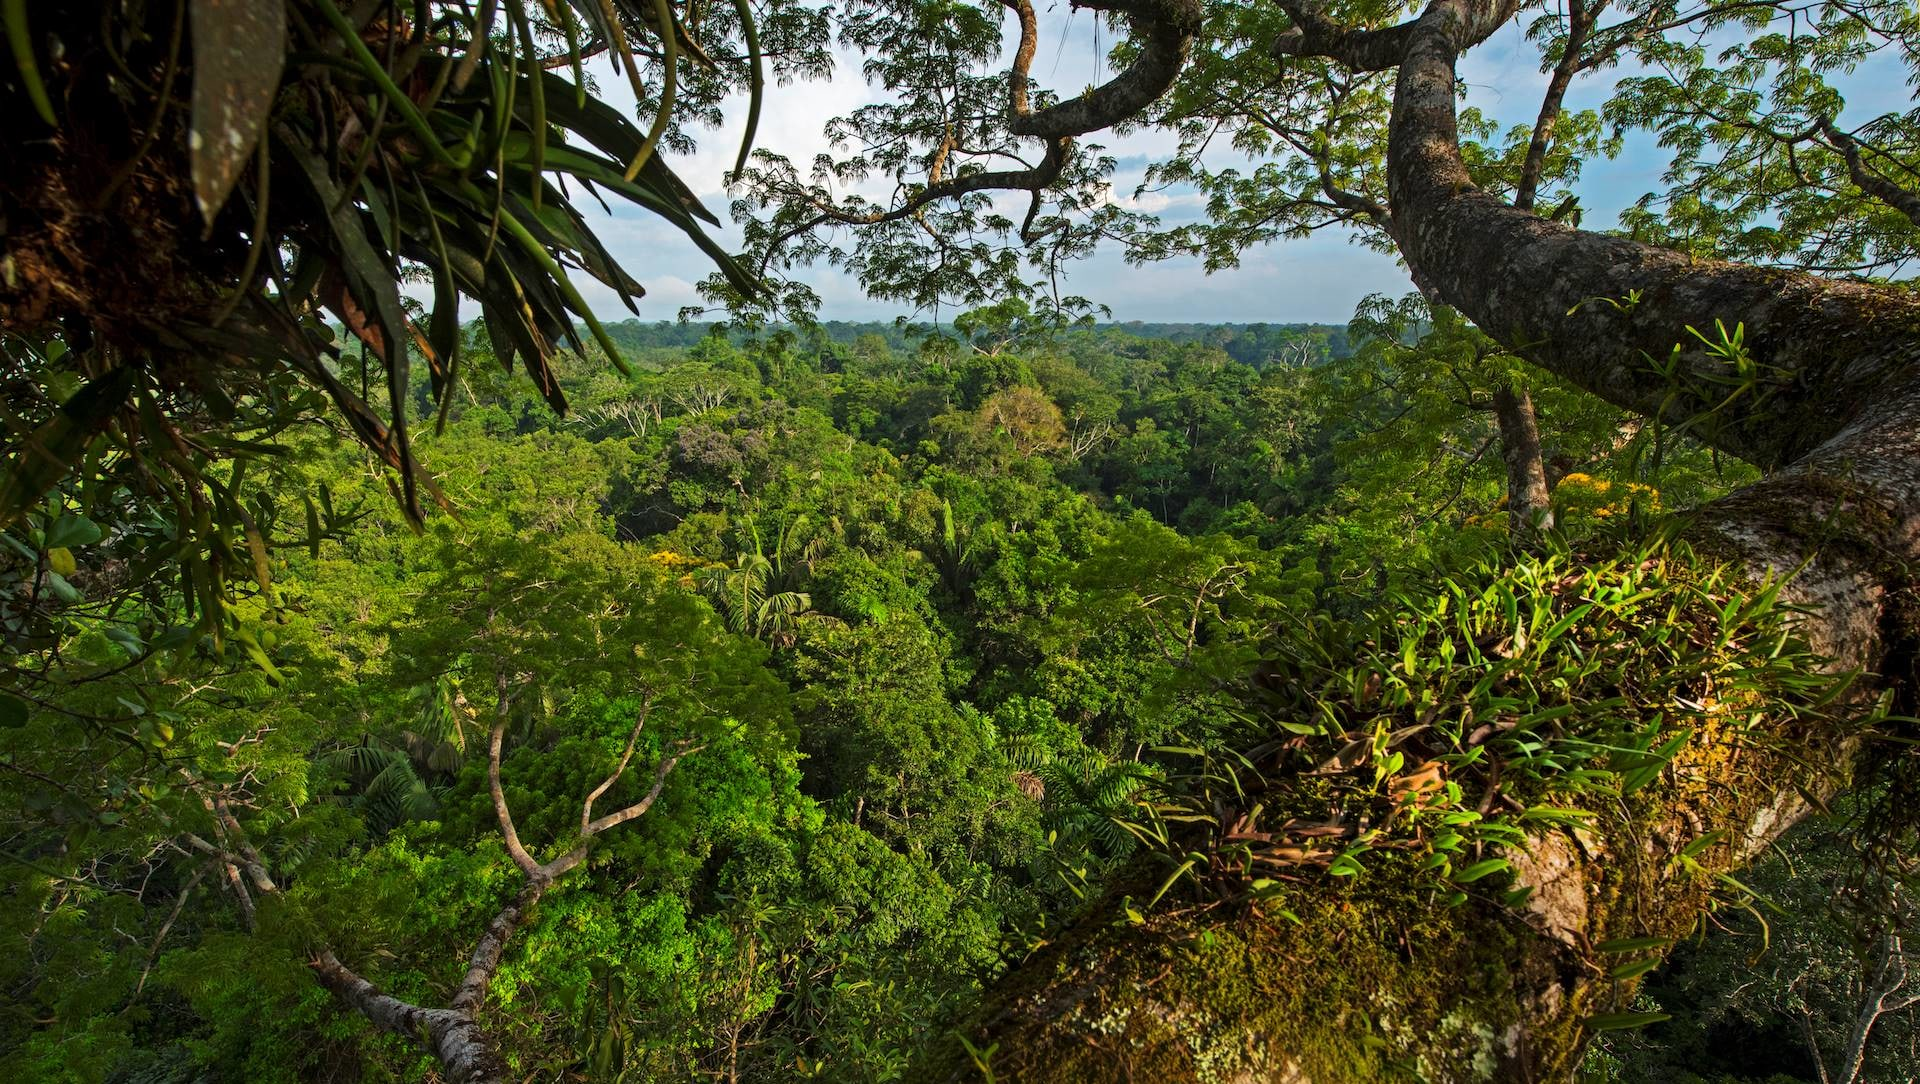 Ancient Wisdom: Lessons from the Amazon Forest in Ecuador